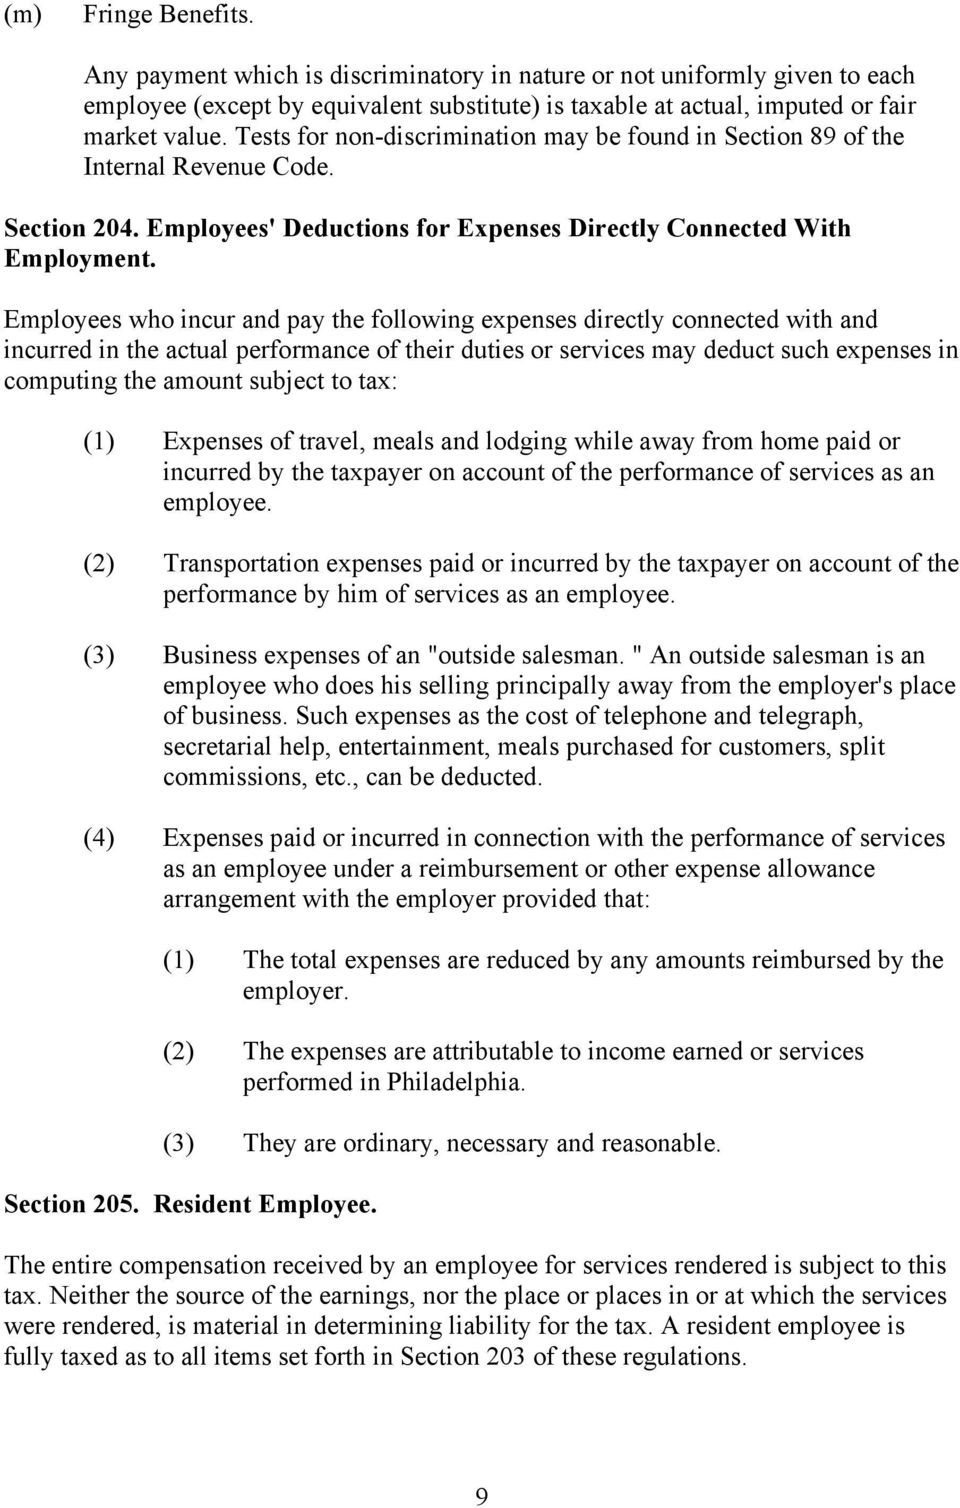 Employees who incur and pay the following expenses directly connected with and incurred in the actual performance of their duties or services may deduct such expenses in computing the amount subject